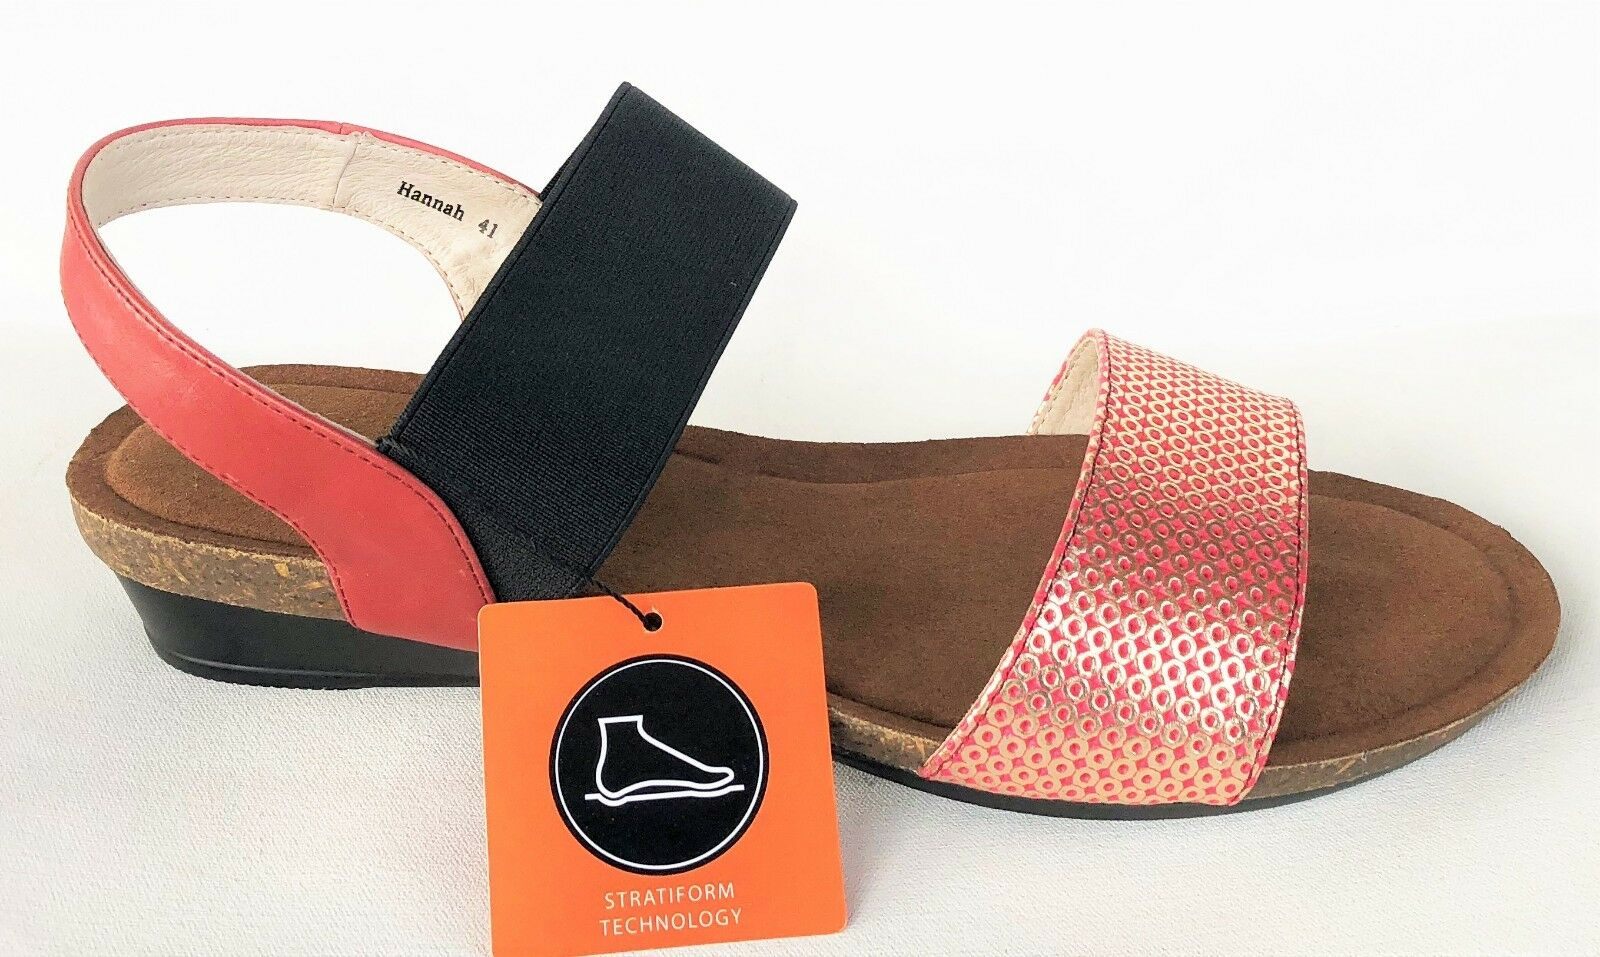 Klouds Schuhes Sandales - Comfort wedge Leder Sandales Schuhes - Silver lining Hannah ROT Shimmer f400c9